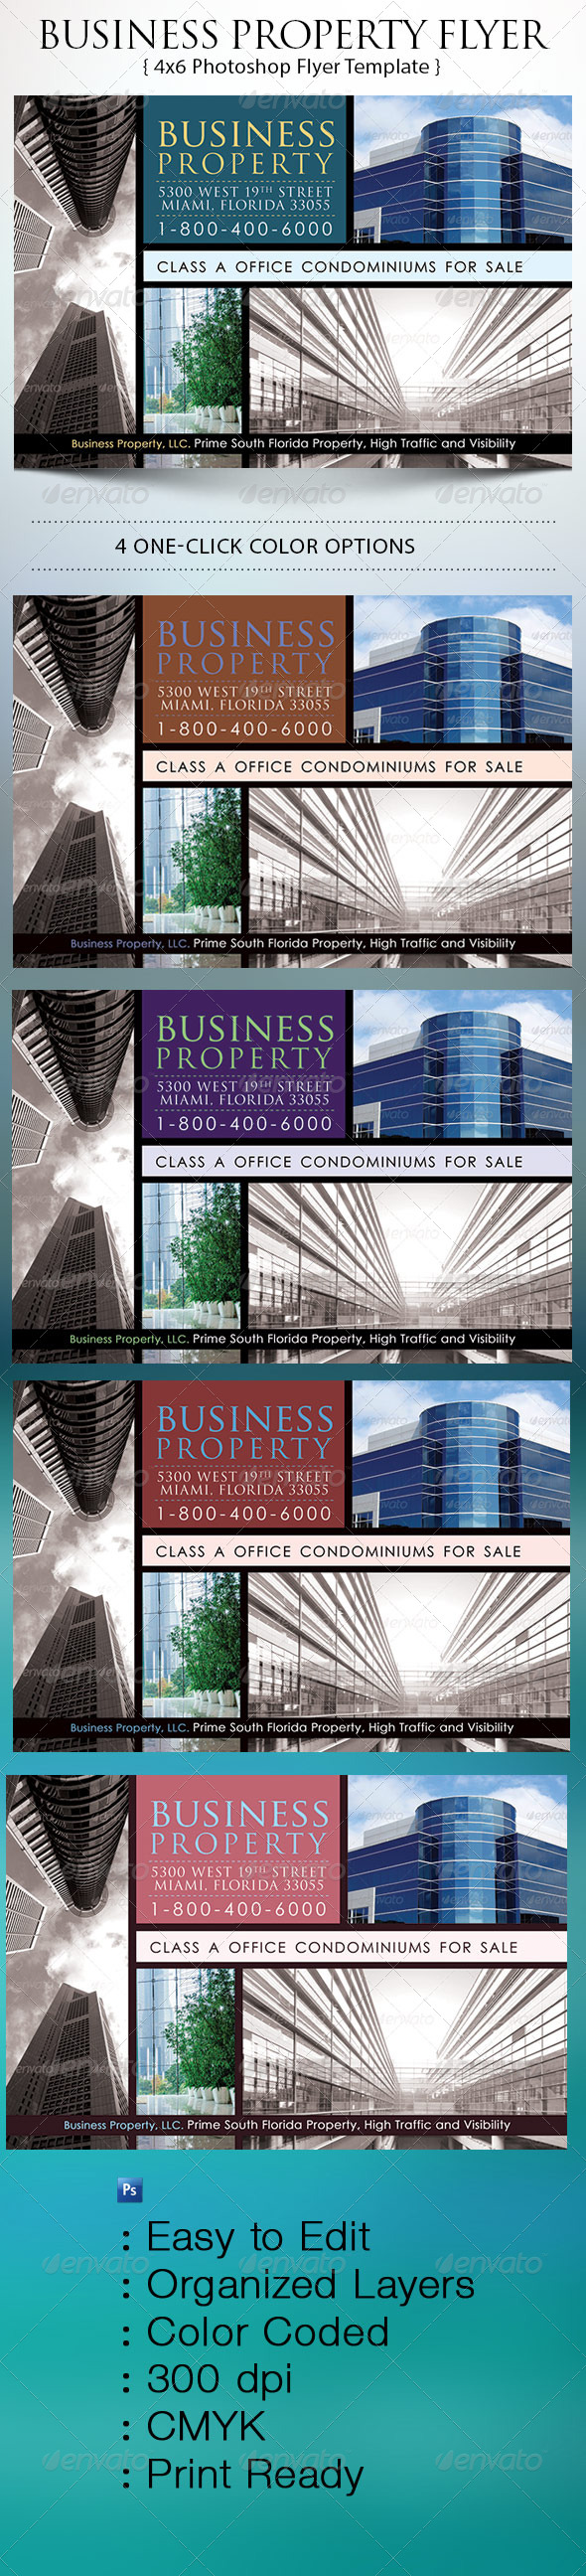 Business Property Flyer - Corporate Flyers